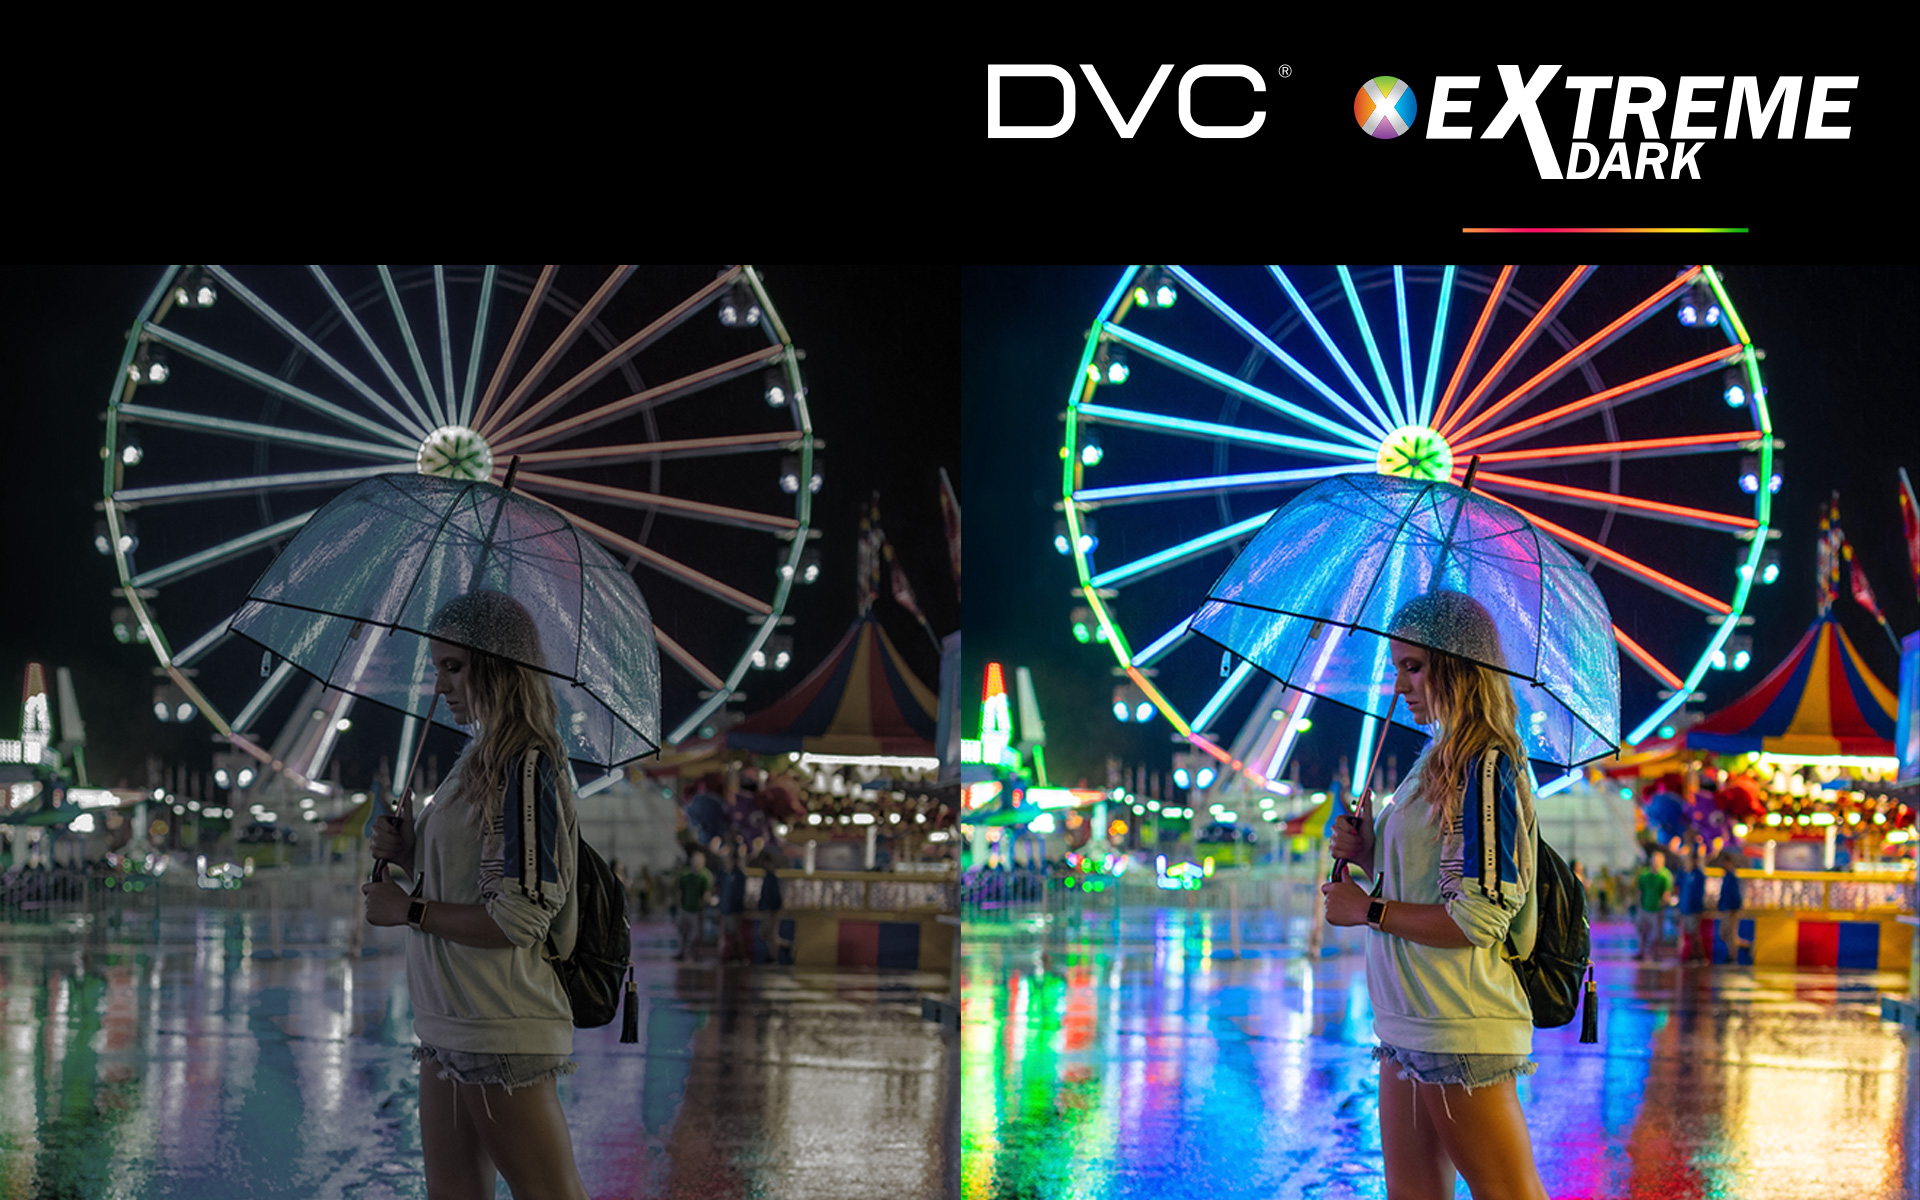 Extreme Dark technology – Perfect image even in complete darkness